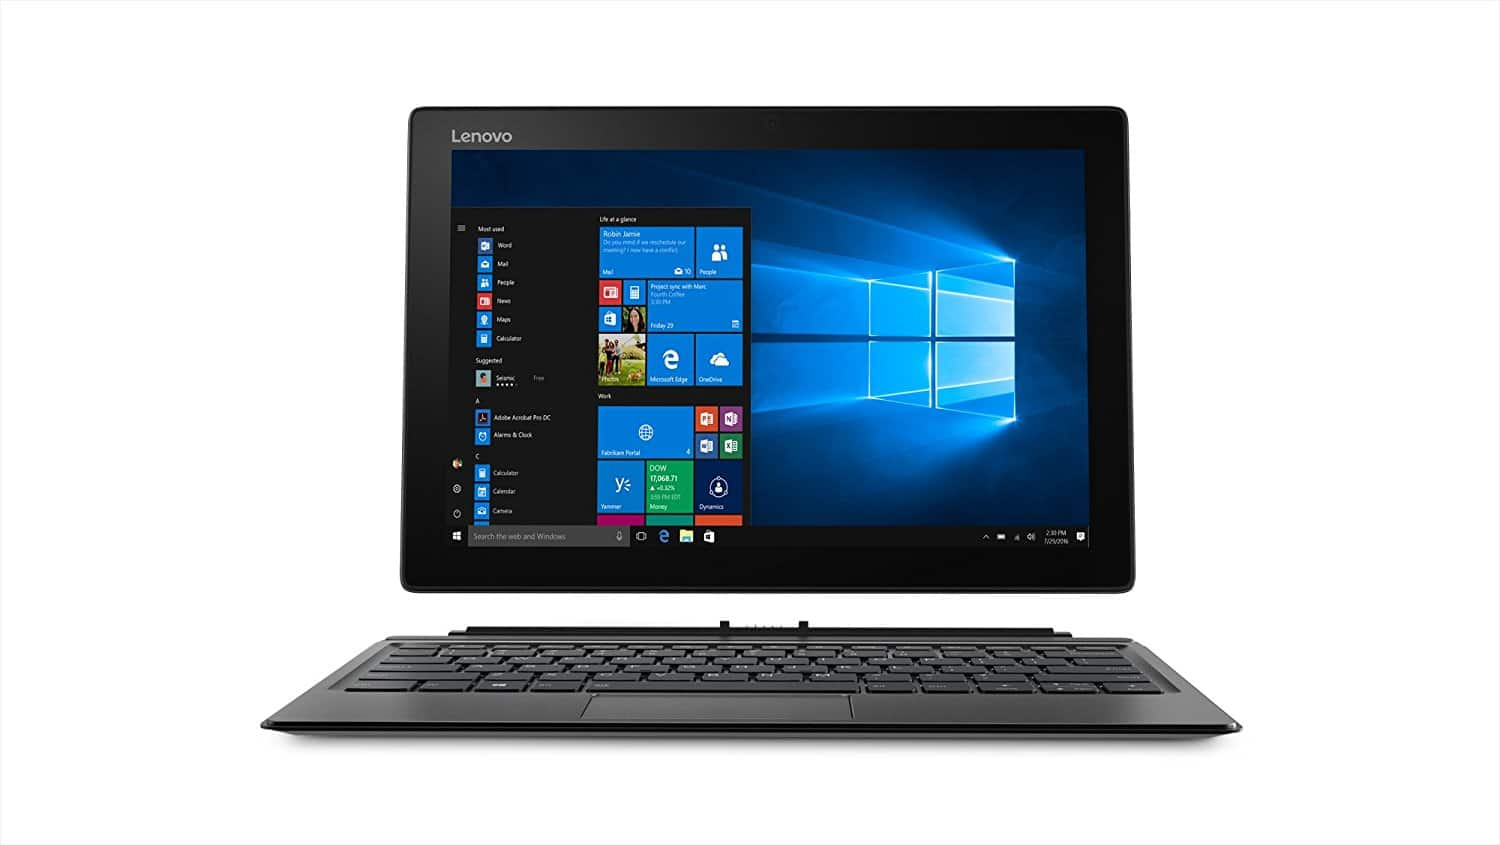 All new Miix 520 2-in-1: 12.2'' FHD IPS Touch, i5-8250U, 8GB DDR4, 256GB PCIe SSD, Keyboard Dock, Lenovo Active Pen 2, Type-C, Win10H @ $828 + F/S